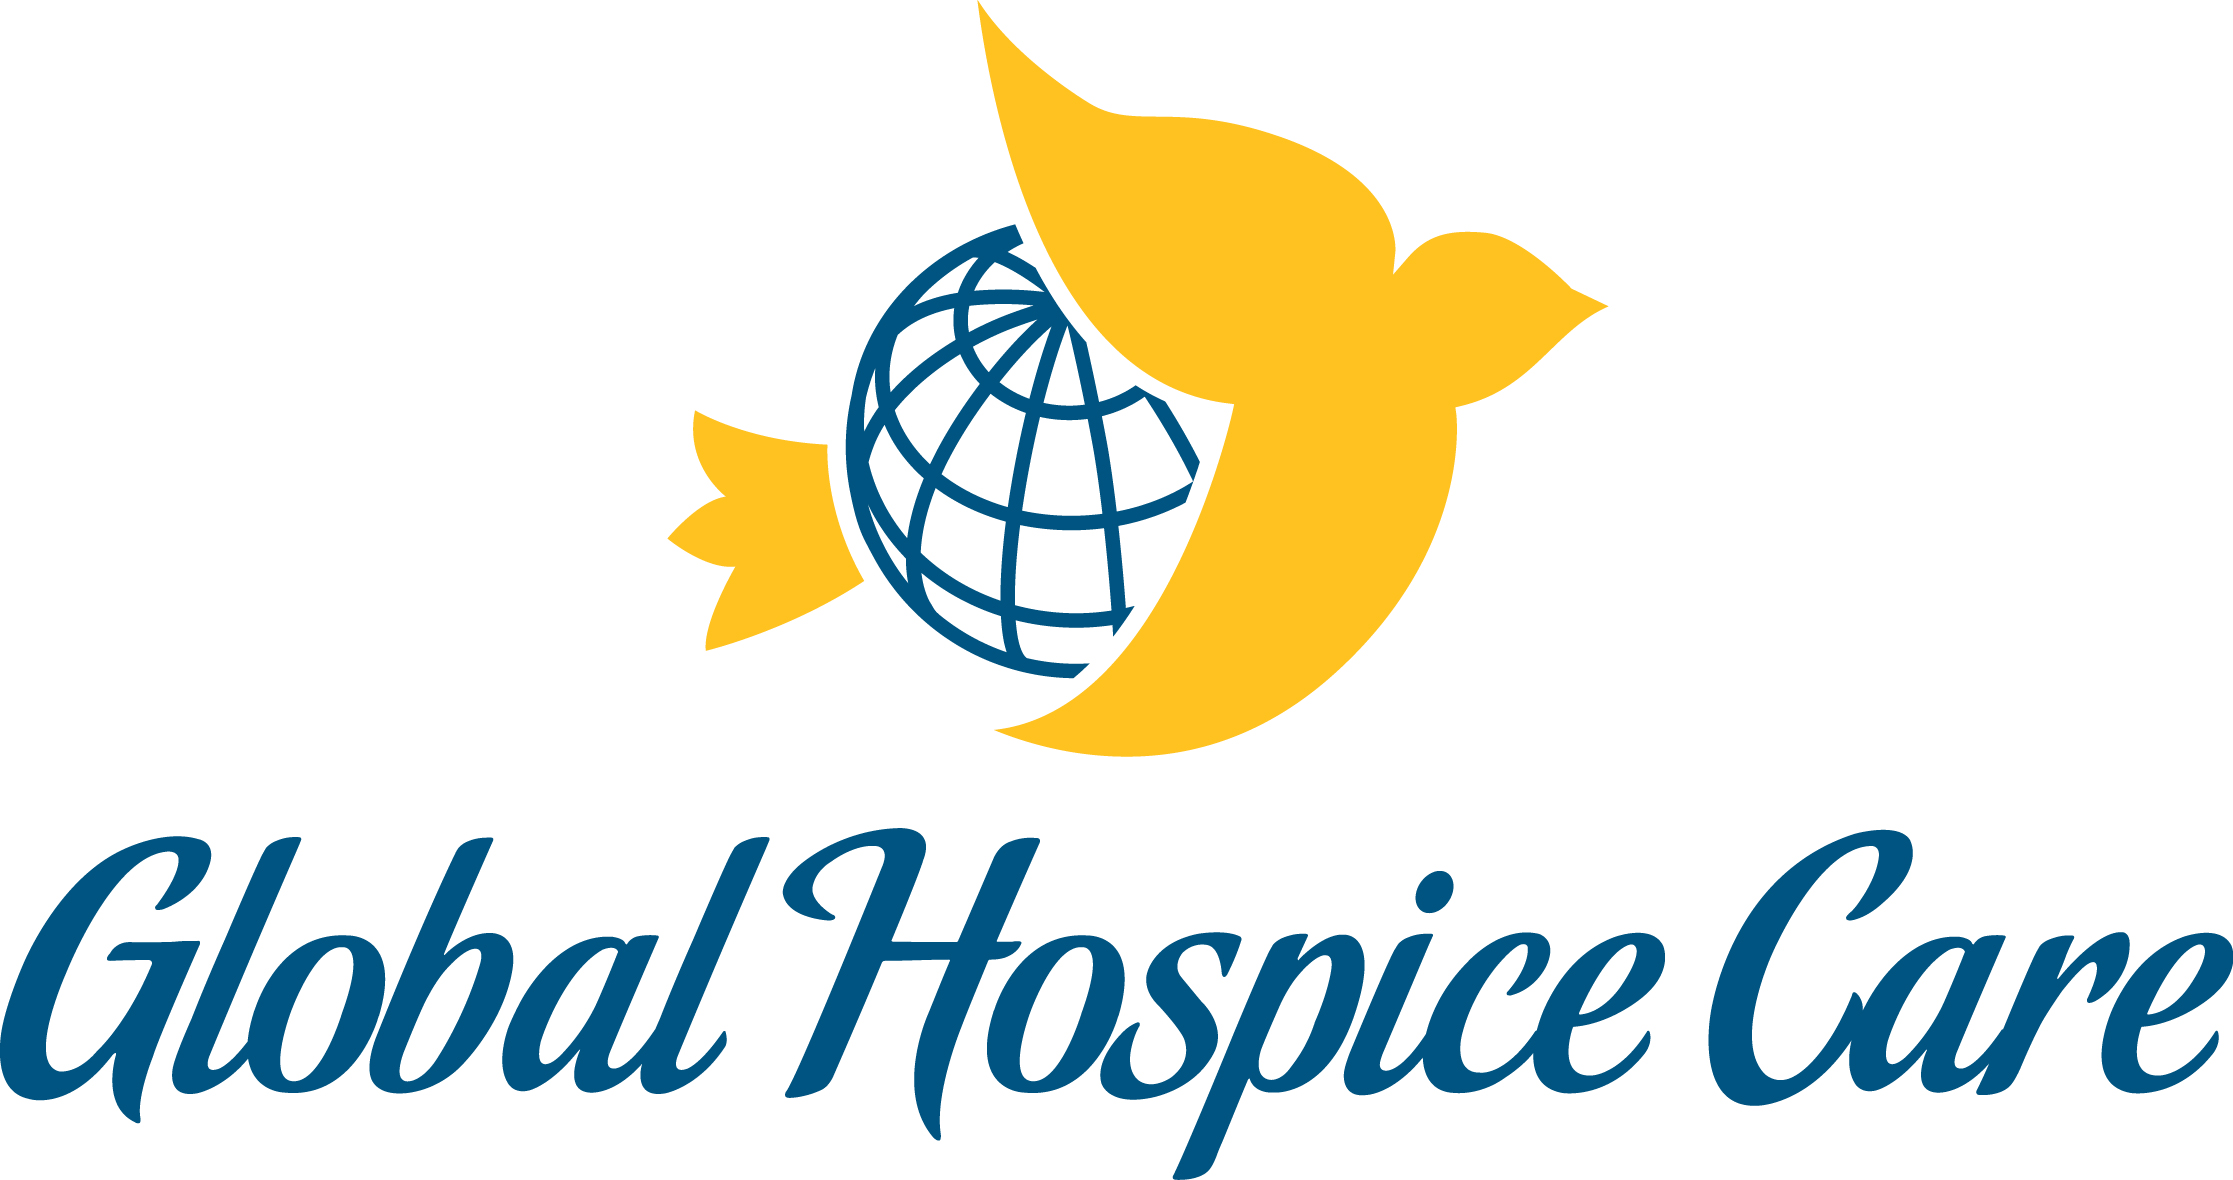 Global Hospice Care: Providing Knowledge, Hope, Compassion, Love & Dignity